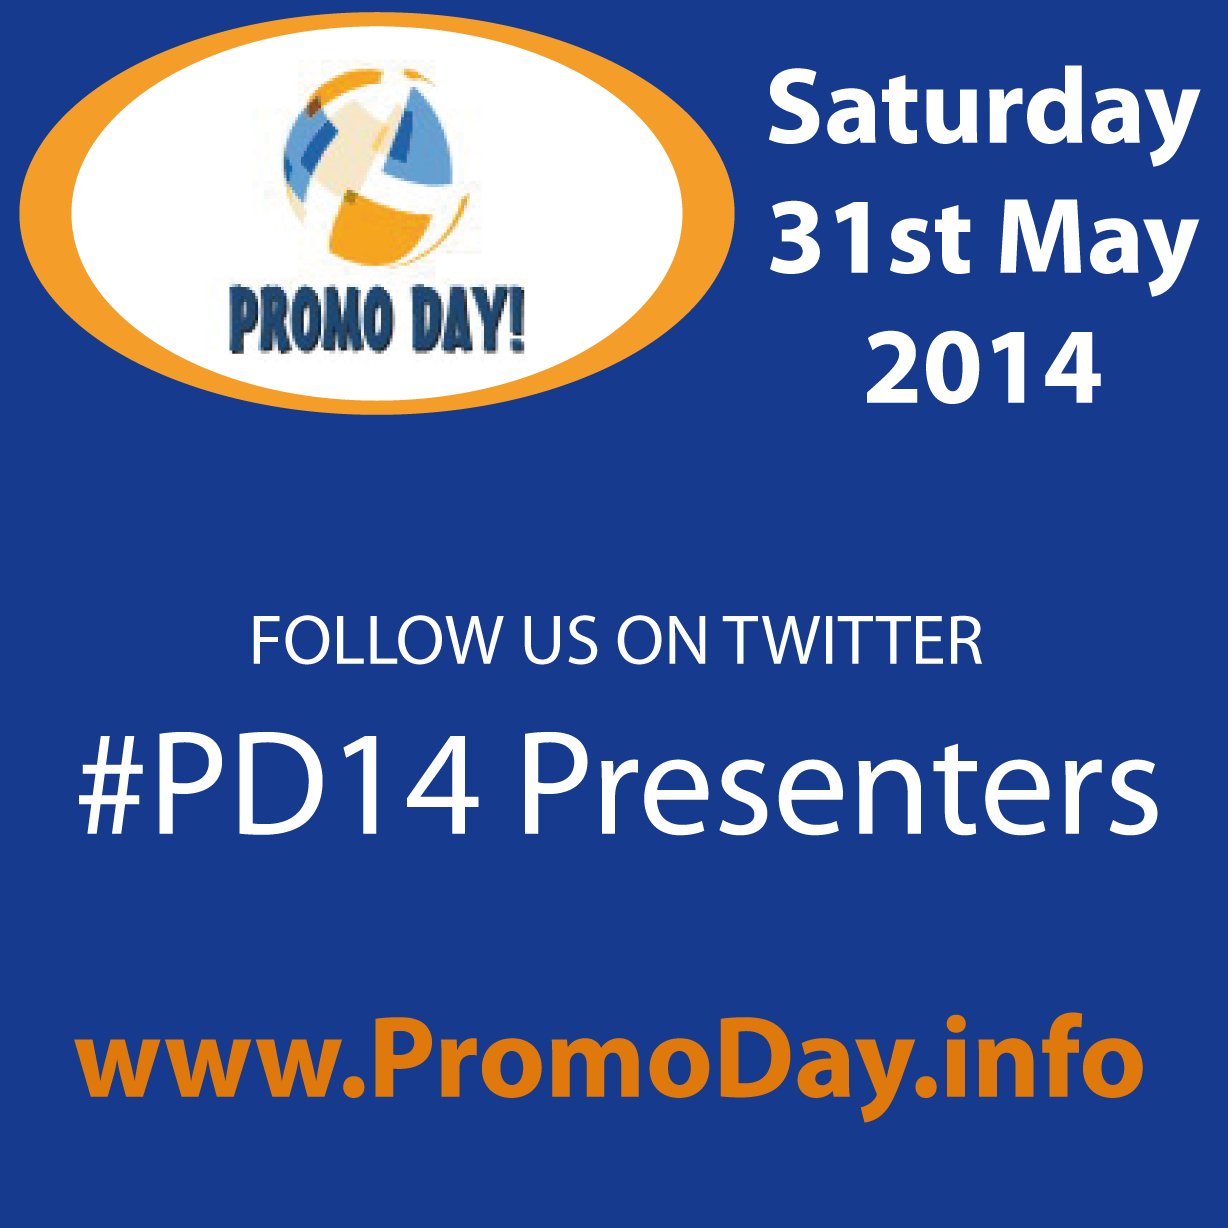 #PD14 presenters on Twitter